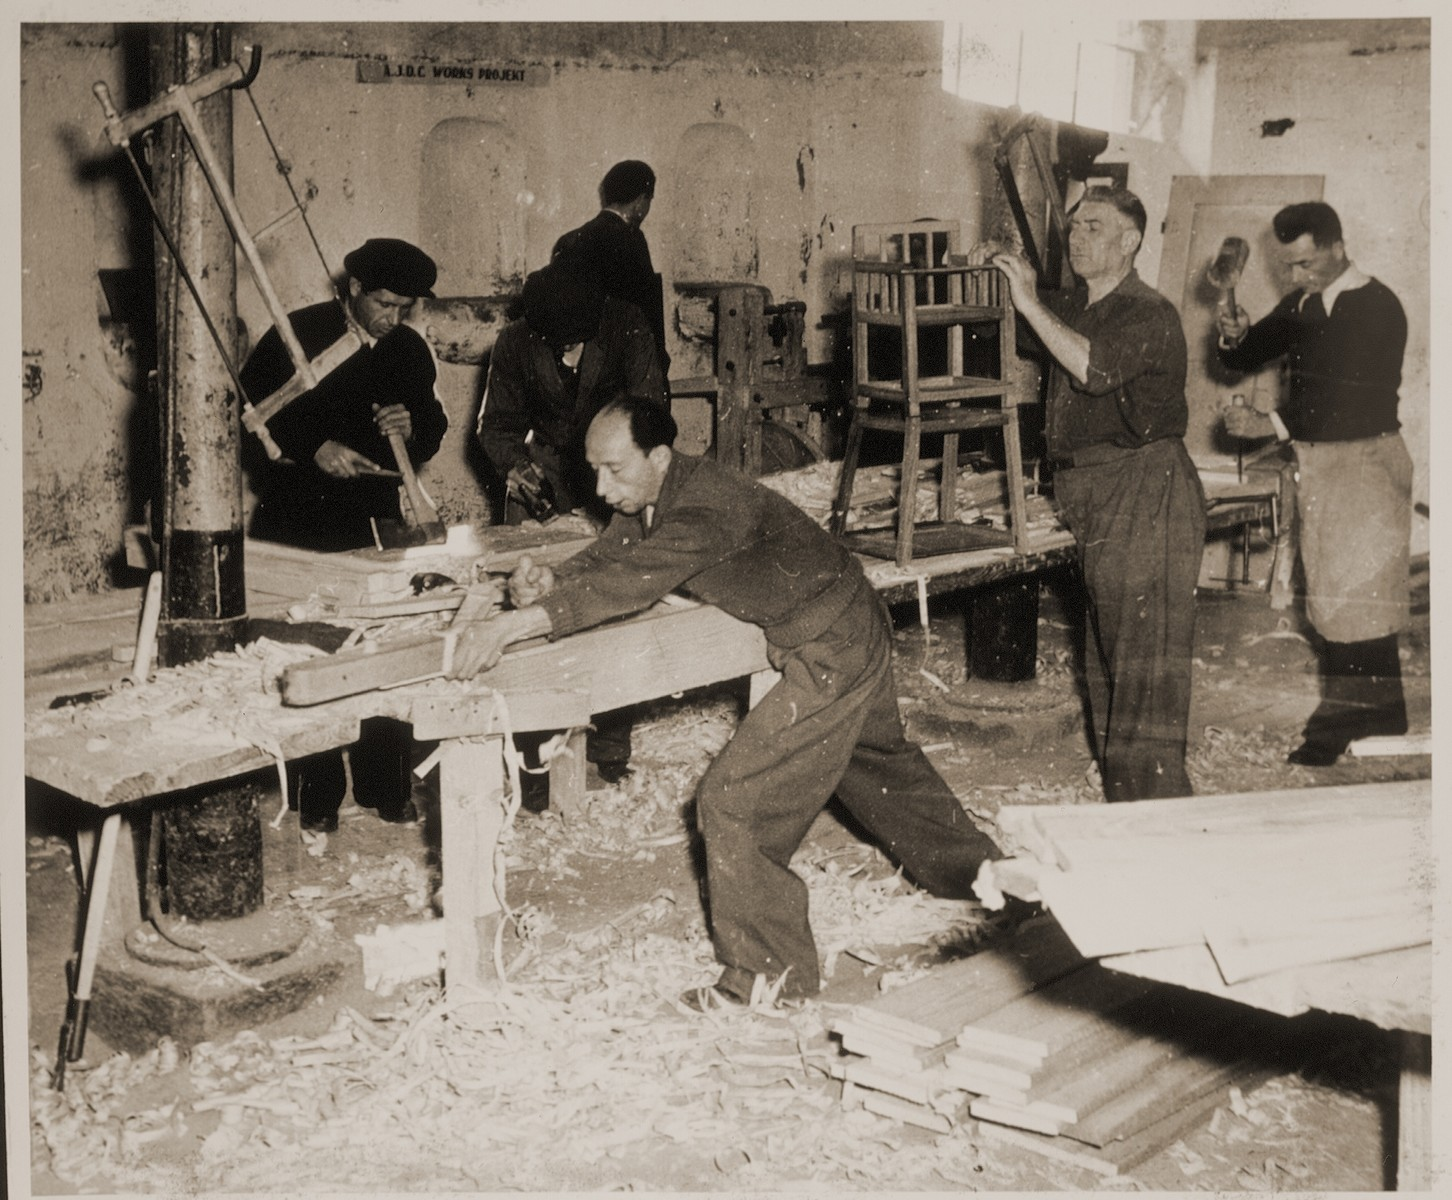 """Jewish DPs build chairs in a carpentry shop in the Bindermichl displaced persons camp.   Family album bearing the title """"Motoring/Jewish DP camp/St. Marein [Sankt Marien]/School,"""" that belonged to Moritz Friedler.  In 1946 and 1947, he served as a social worker with the Jewish Committee for Relief Abroad at the Sankt Marien DP camp in the British zone of Austria. Friedler subsequently became the JDC's Area Director in Linz, Austria.  The photo album documents Jewish DP life in both places."""